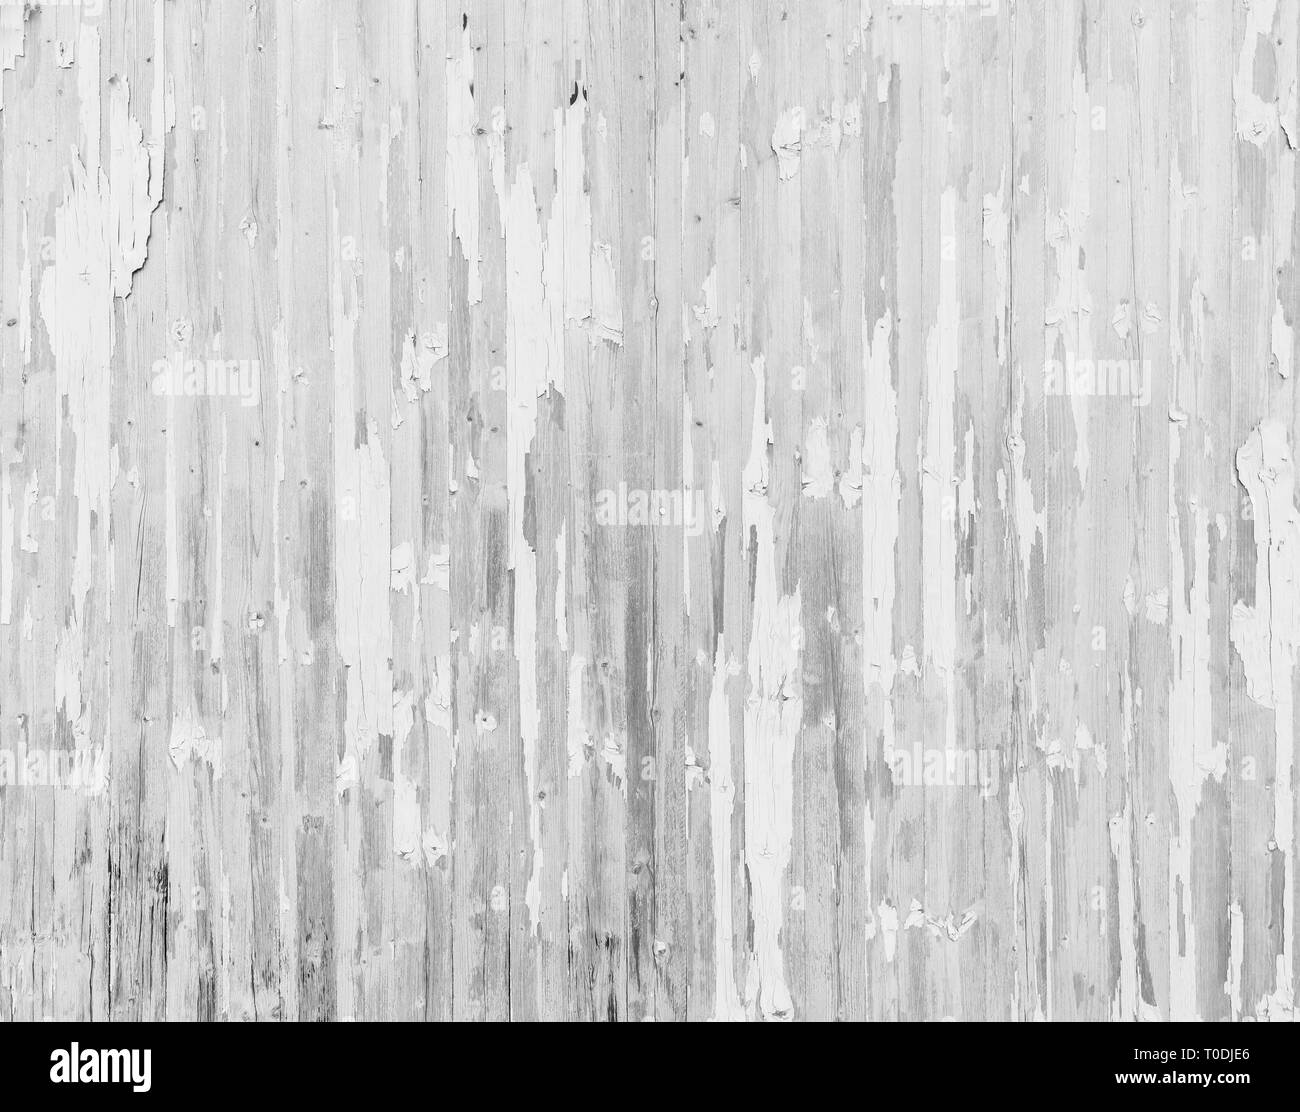 High resolution full frame background of a weathered and faded wooden wall or wood panelling in black and white, paint mostly peeled off. Stock Photo